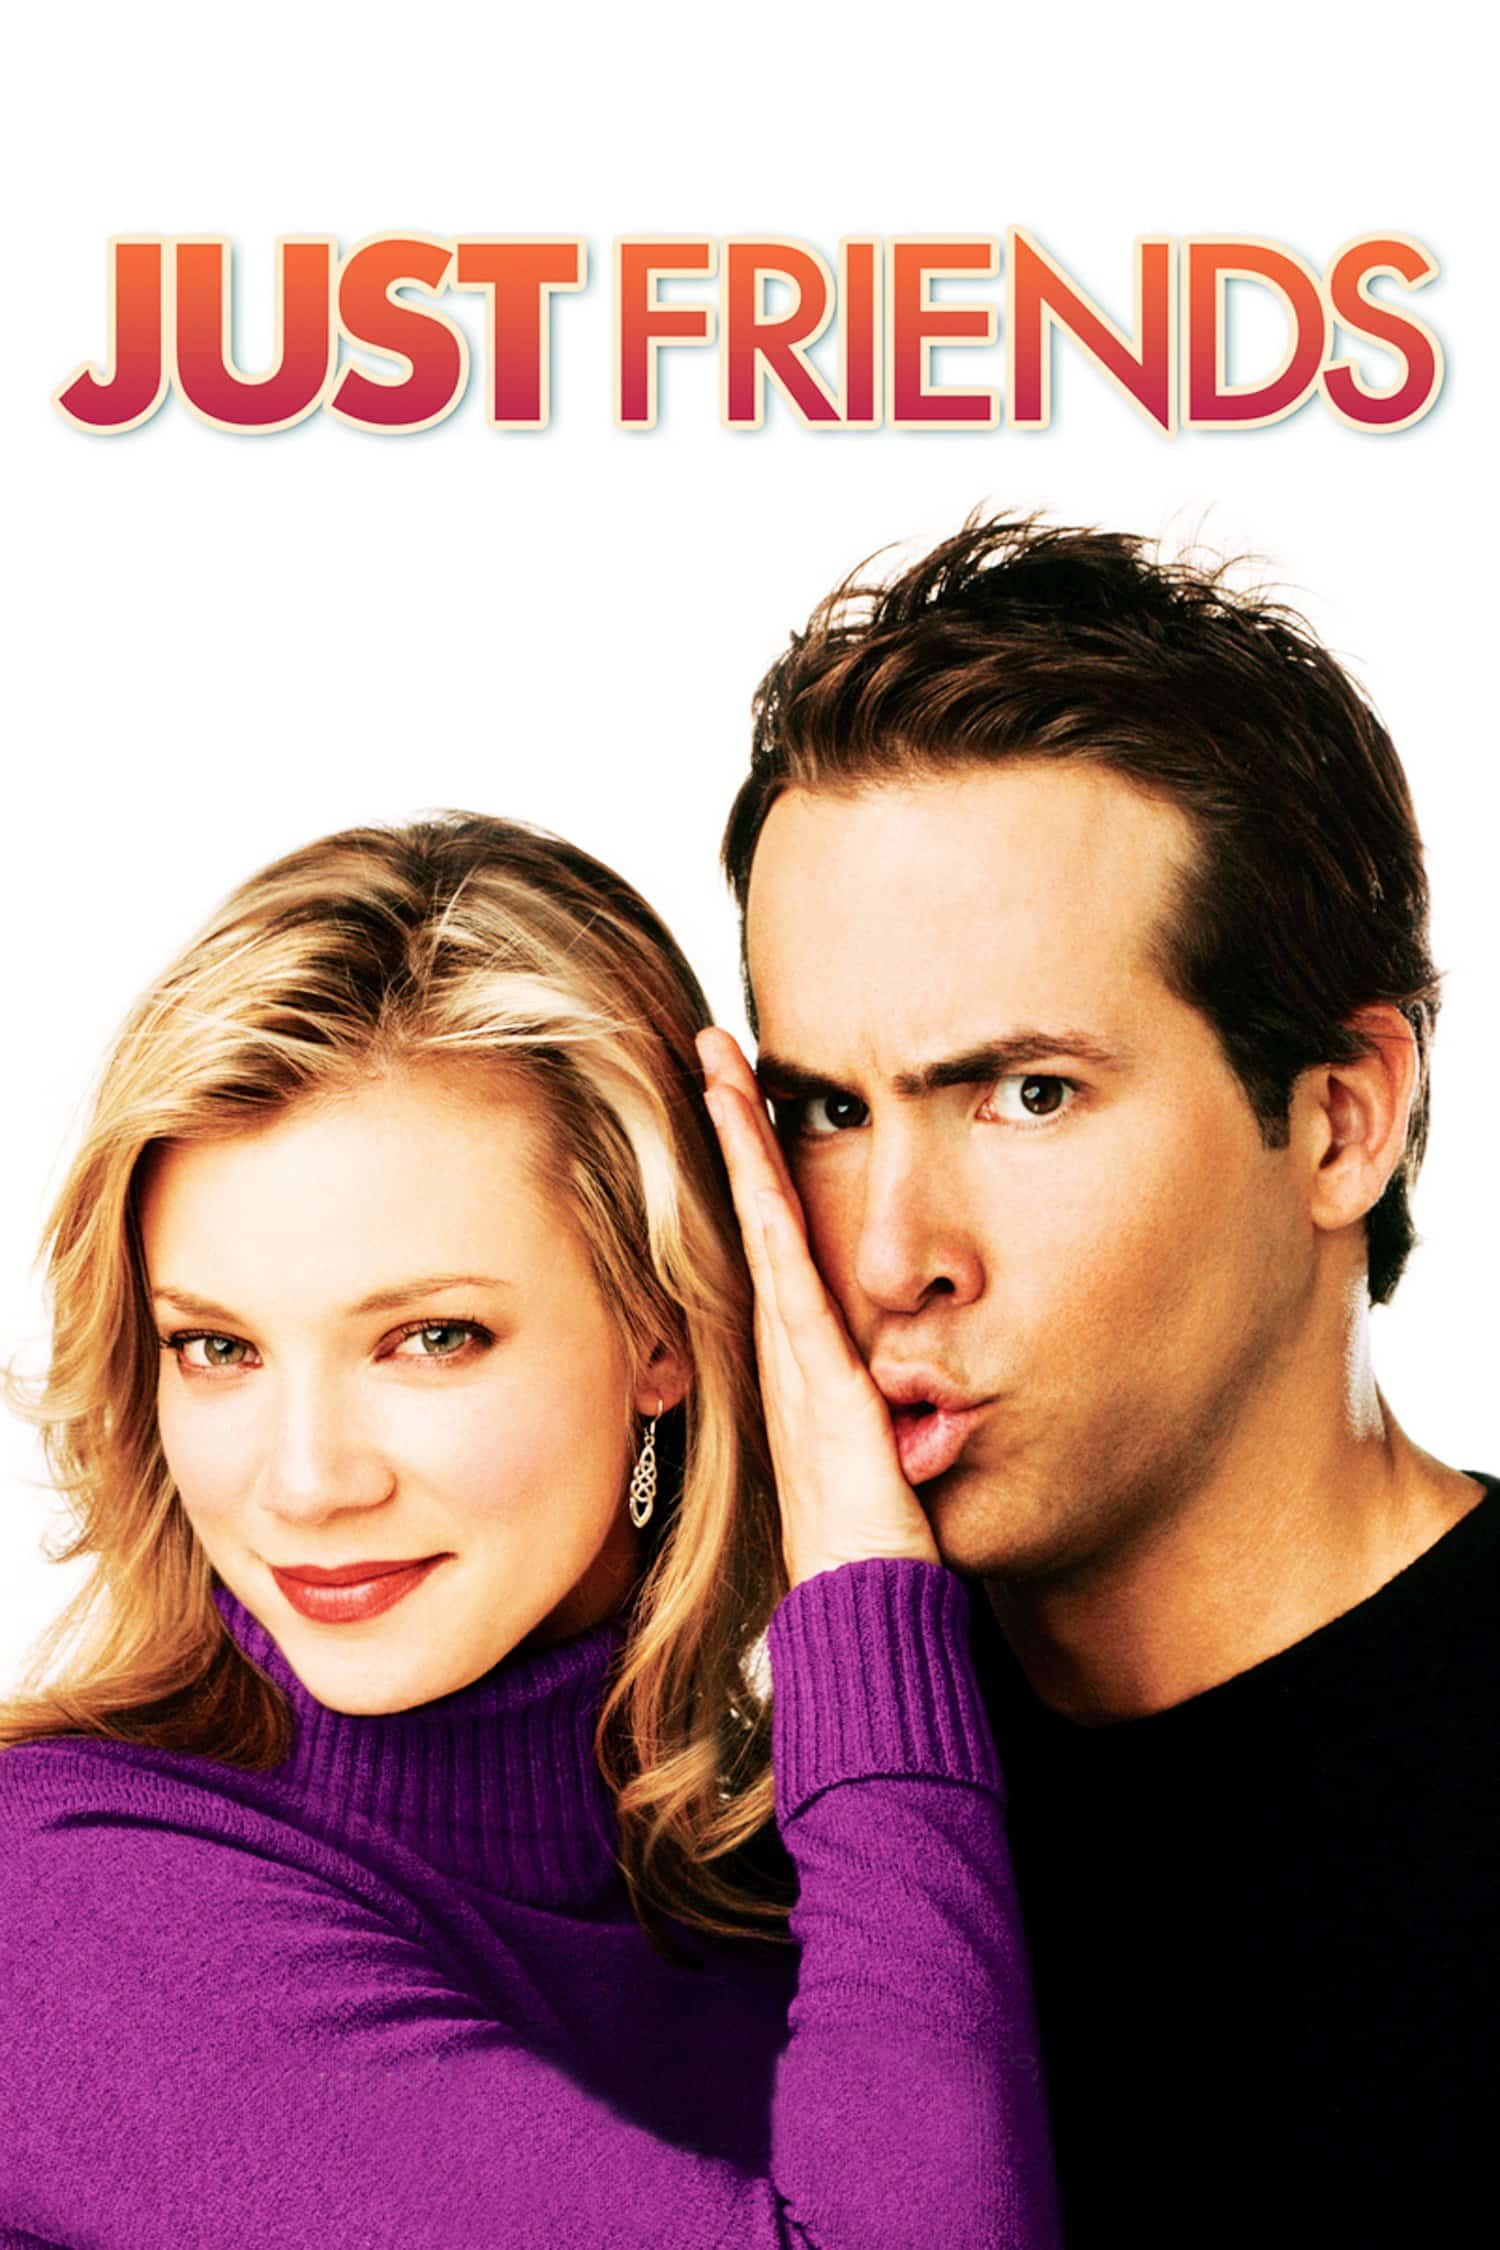 Just Friends, 2005